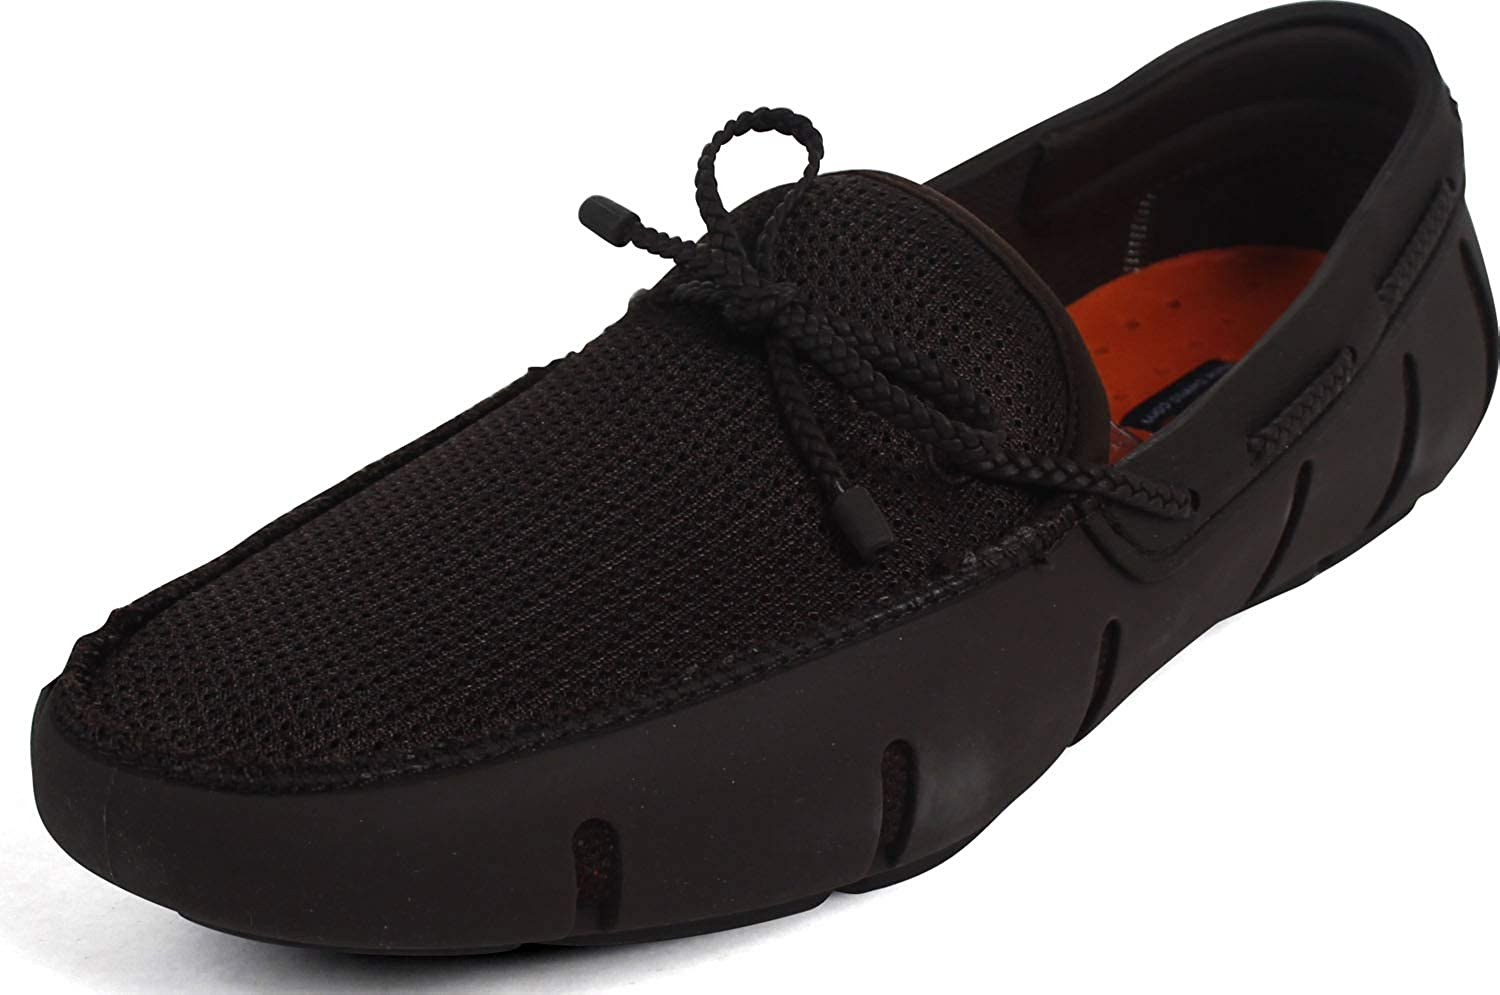 SWIMS Braided Lace Loafer Brown 7 M